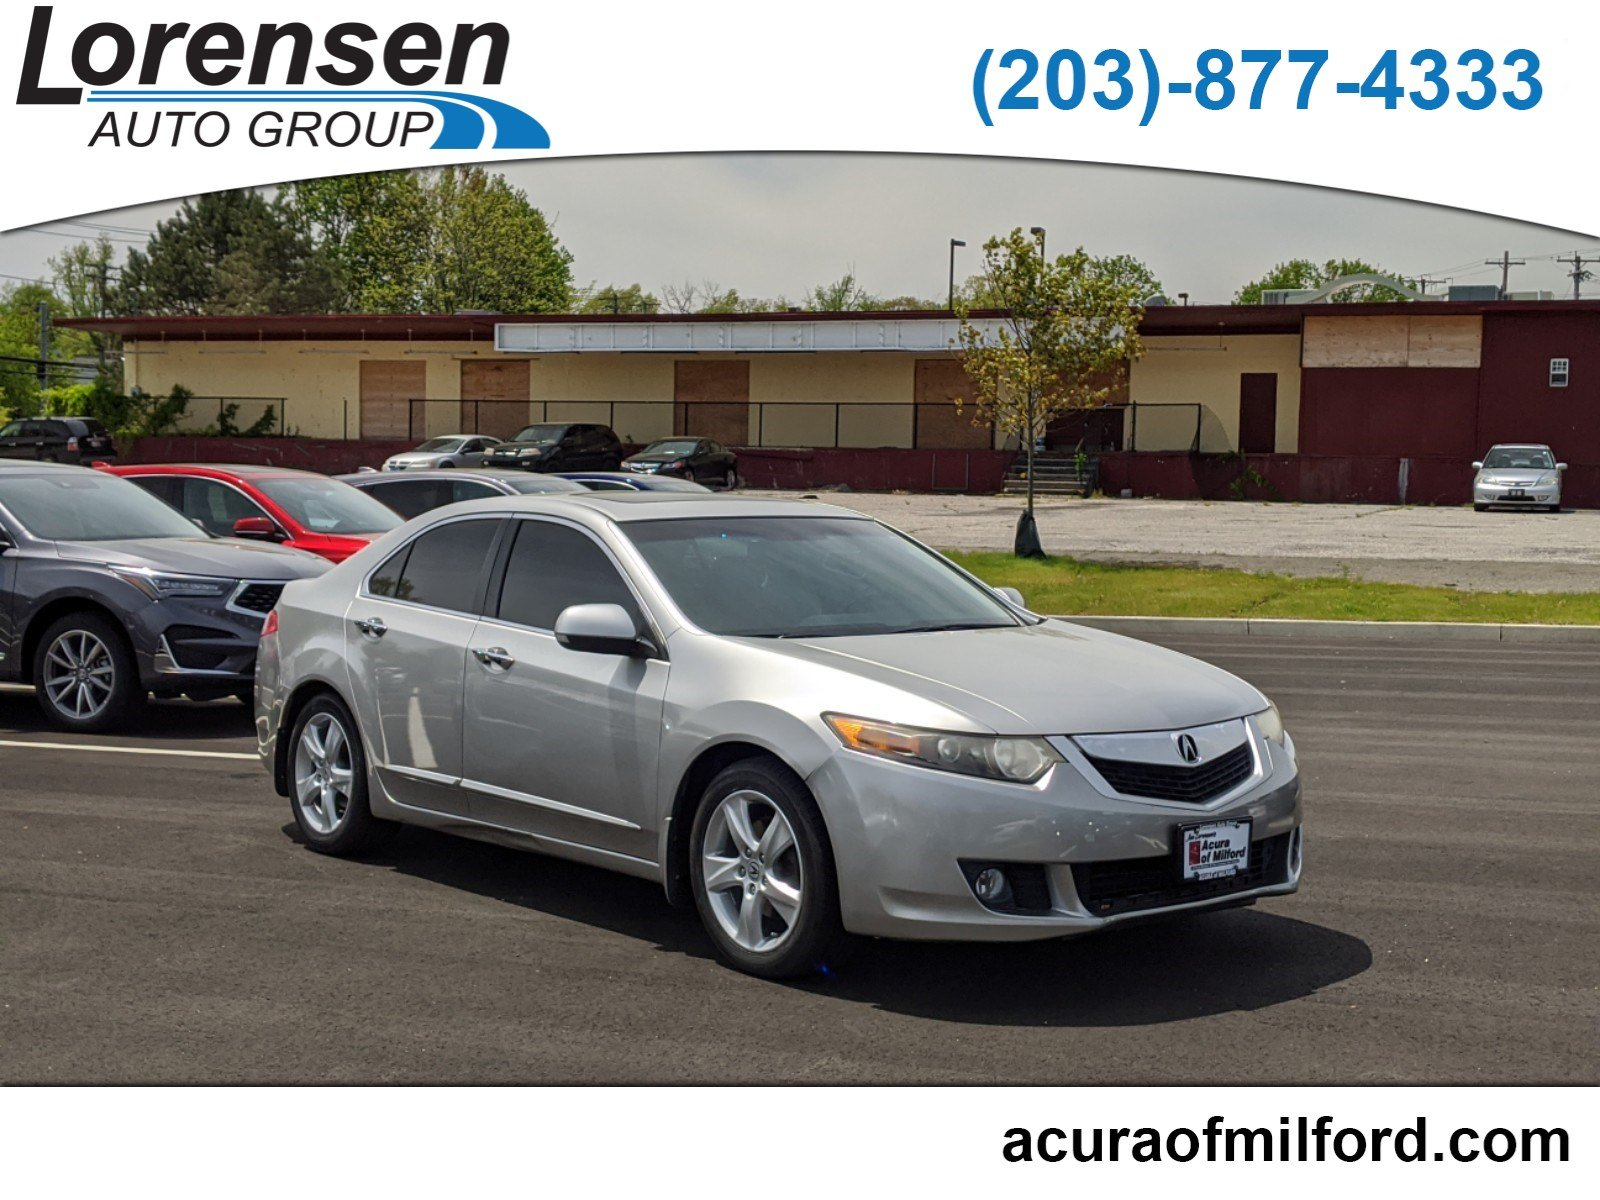 Pre-Owned 2010 Acura TSX 4dr Sdn I4 Auto